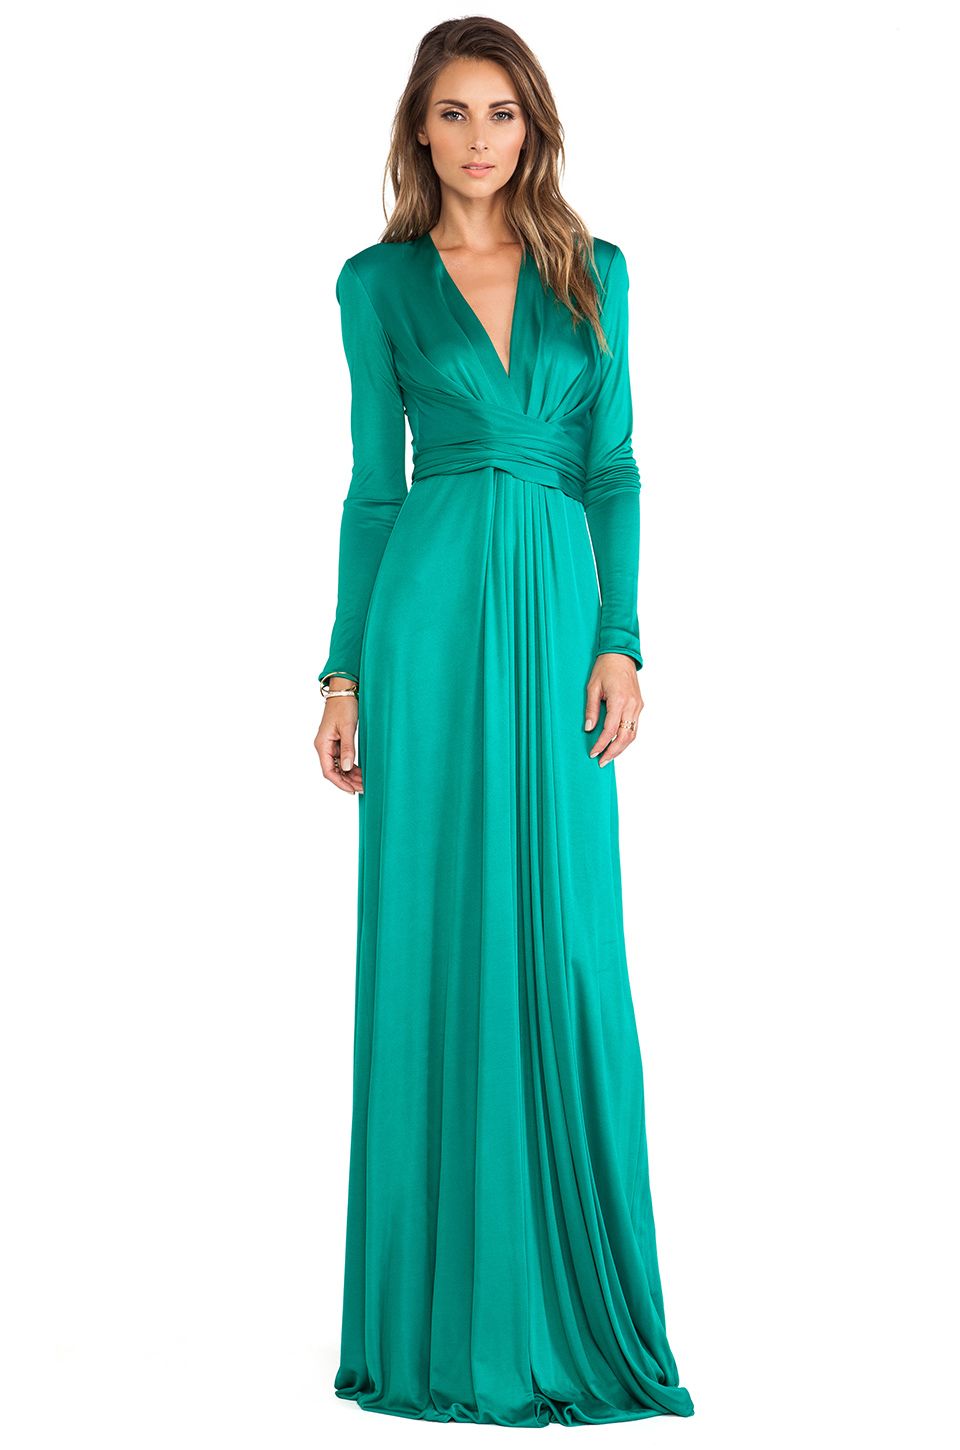 Issa Florence Long Sleeve Maxi Dress in Green (Jade) | Lyst